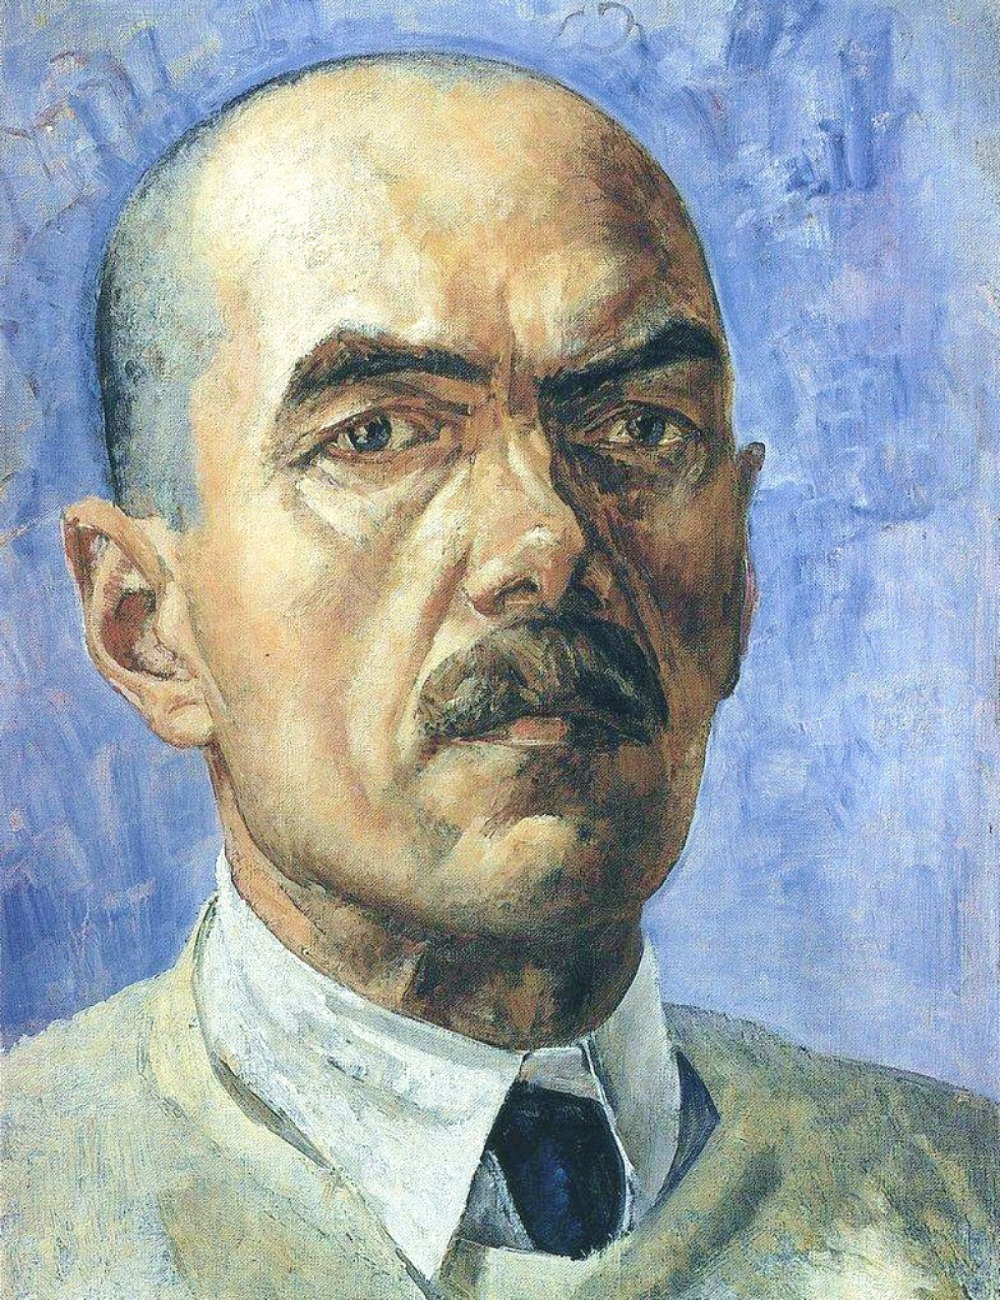 00 Kuzma Petrov-Vodkin. A Self-Portrait 1929